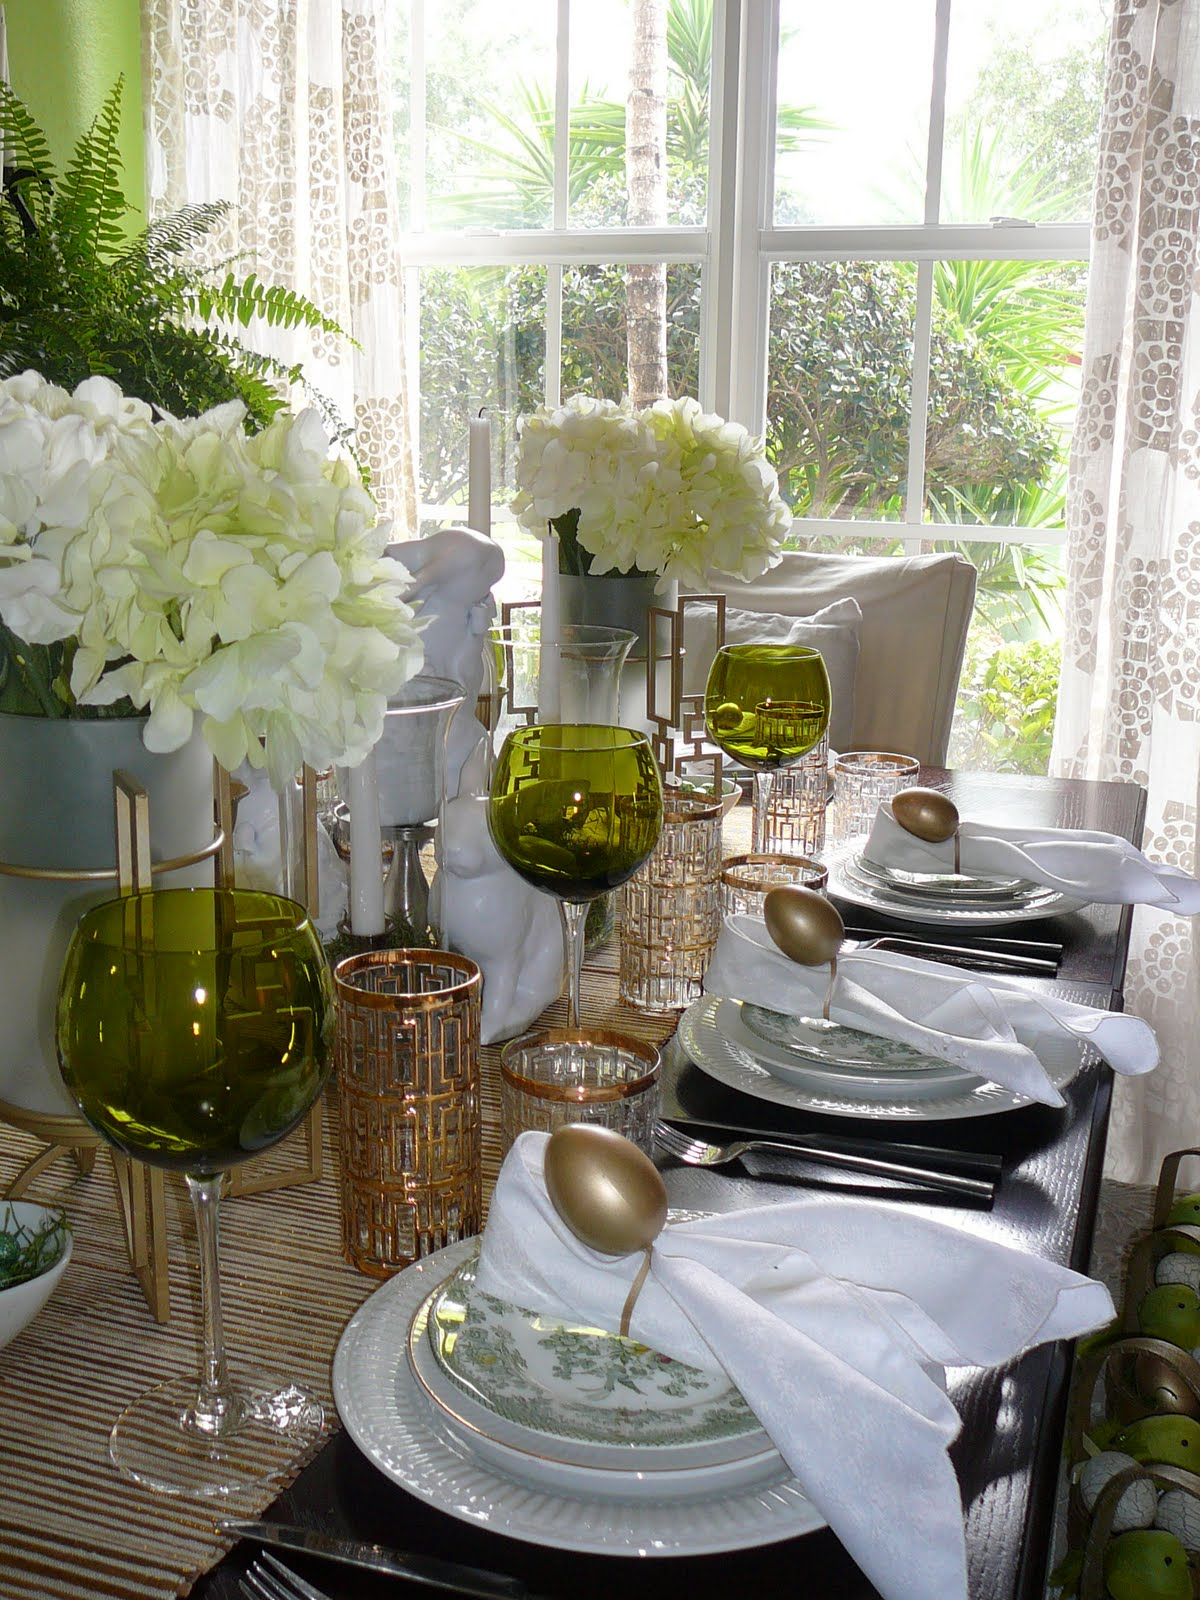 TABLESTYLING EASTER ELEGANCE TOUCHED WITH GOLD